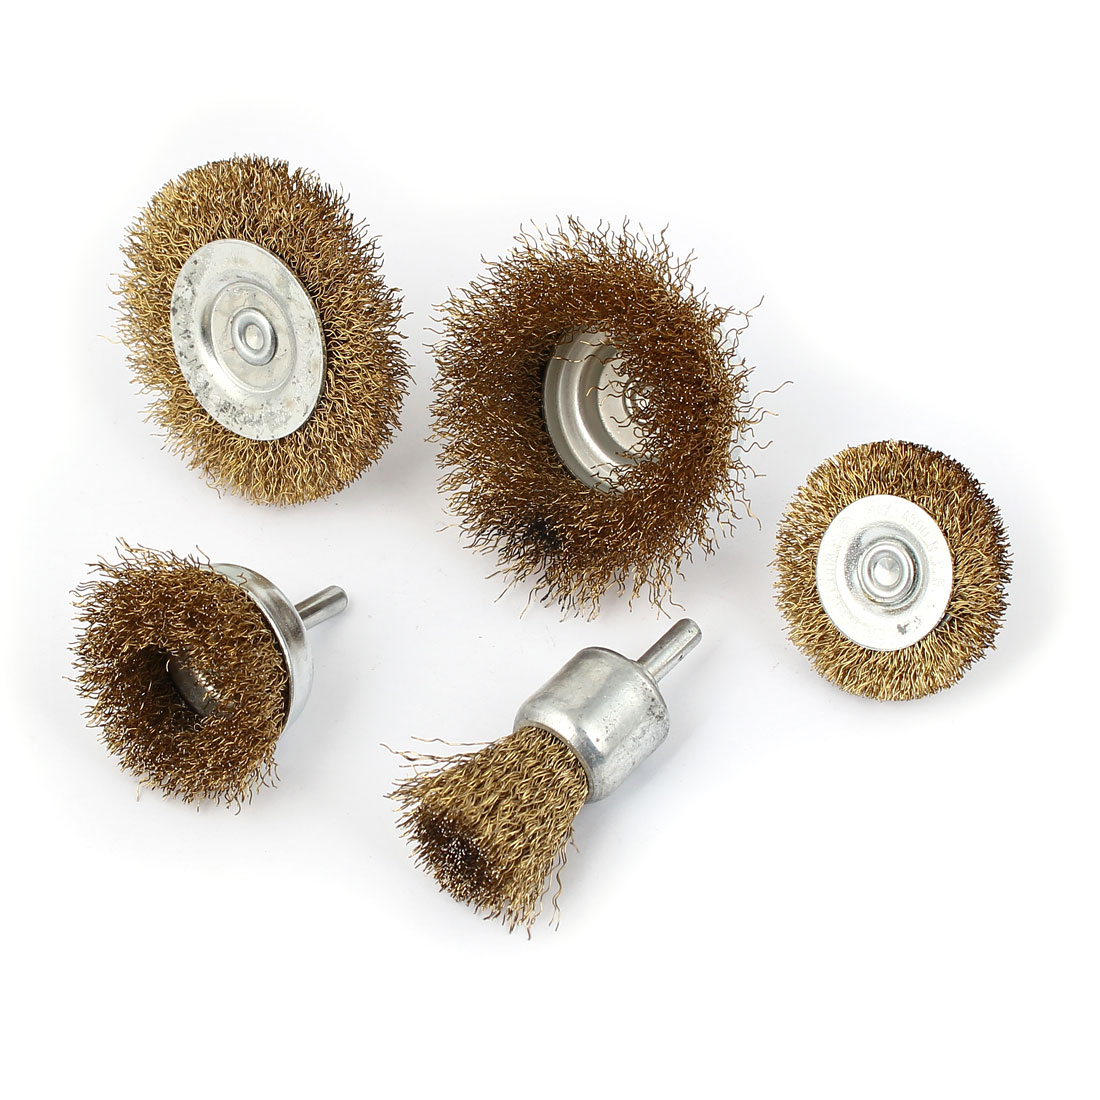 Steel Wire Polishing Wheel Grinder Cleaning Brush Tool 5 in 1 Set Gold Tone